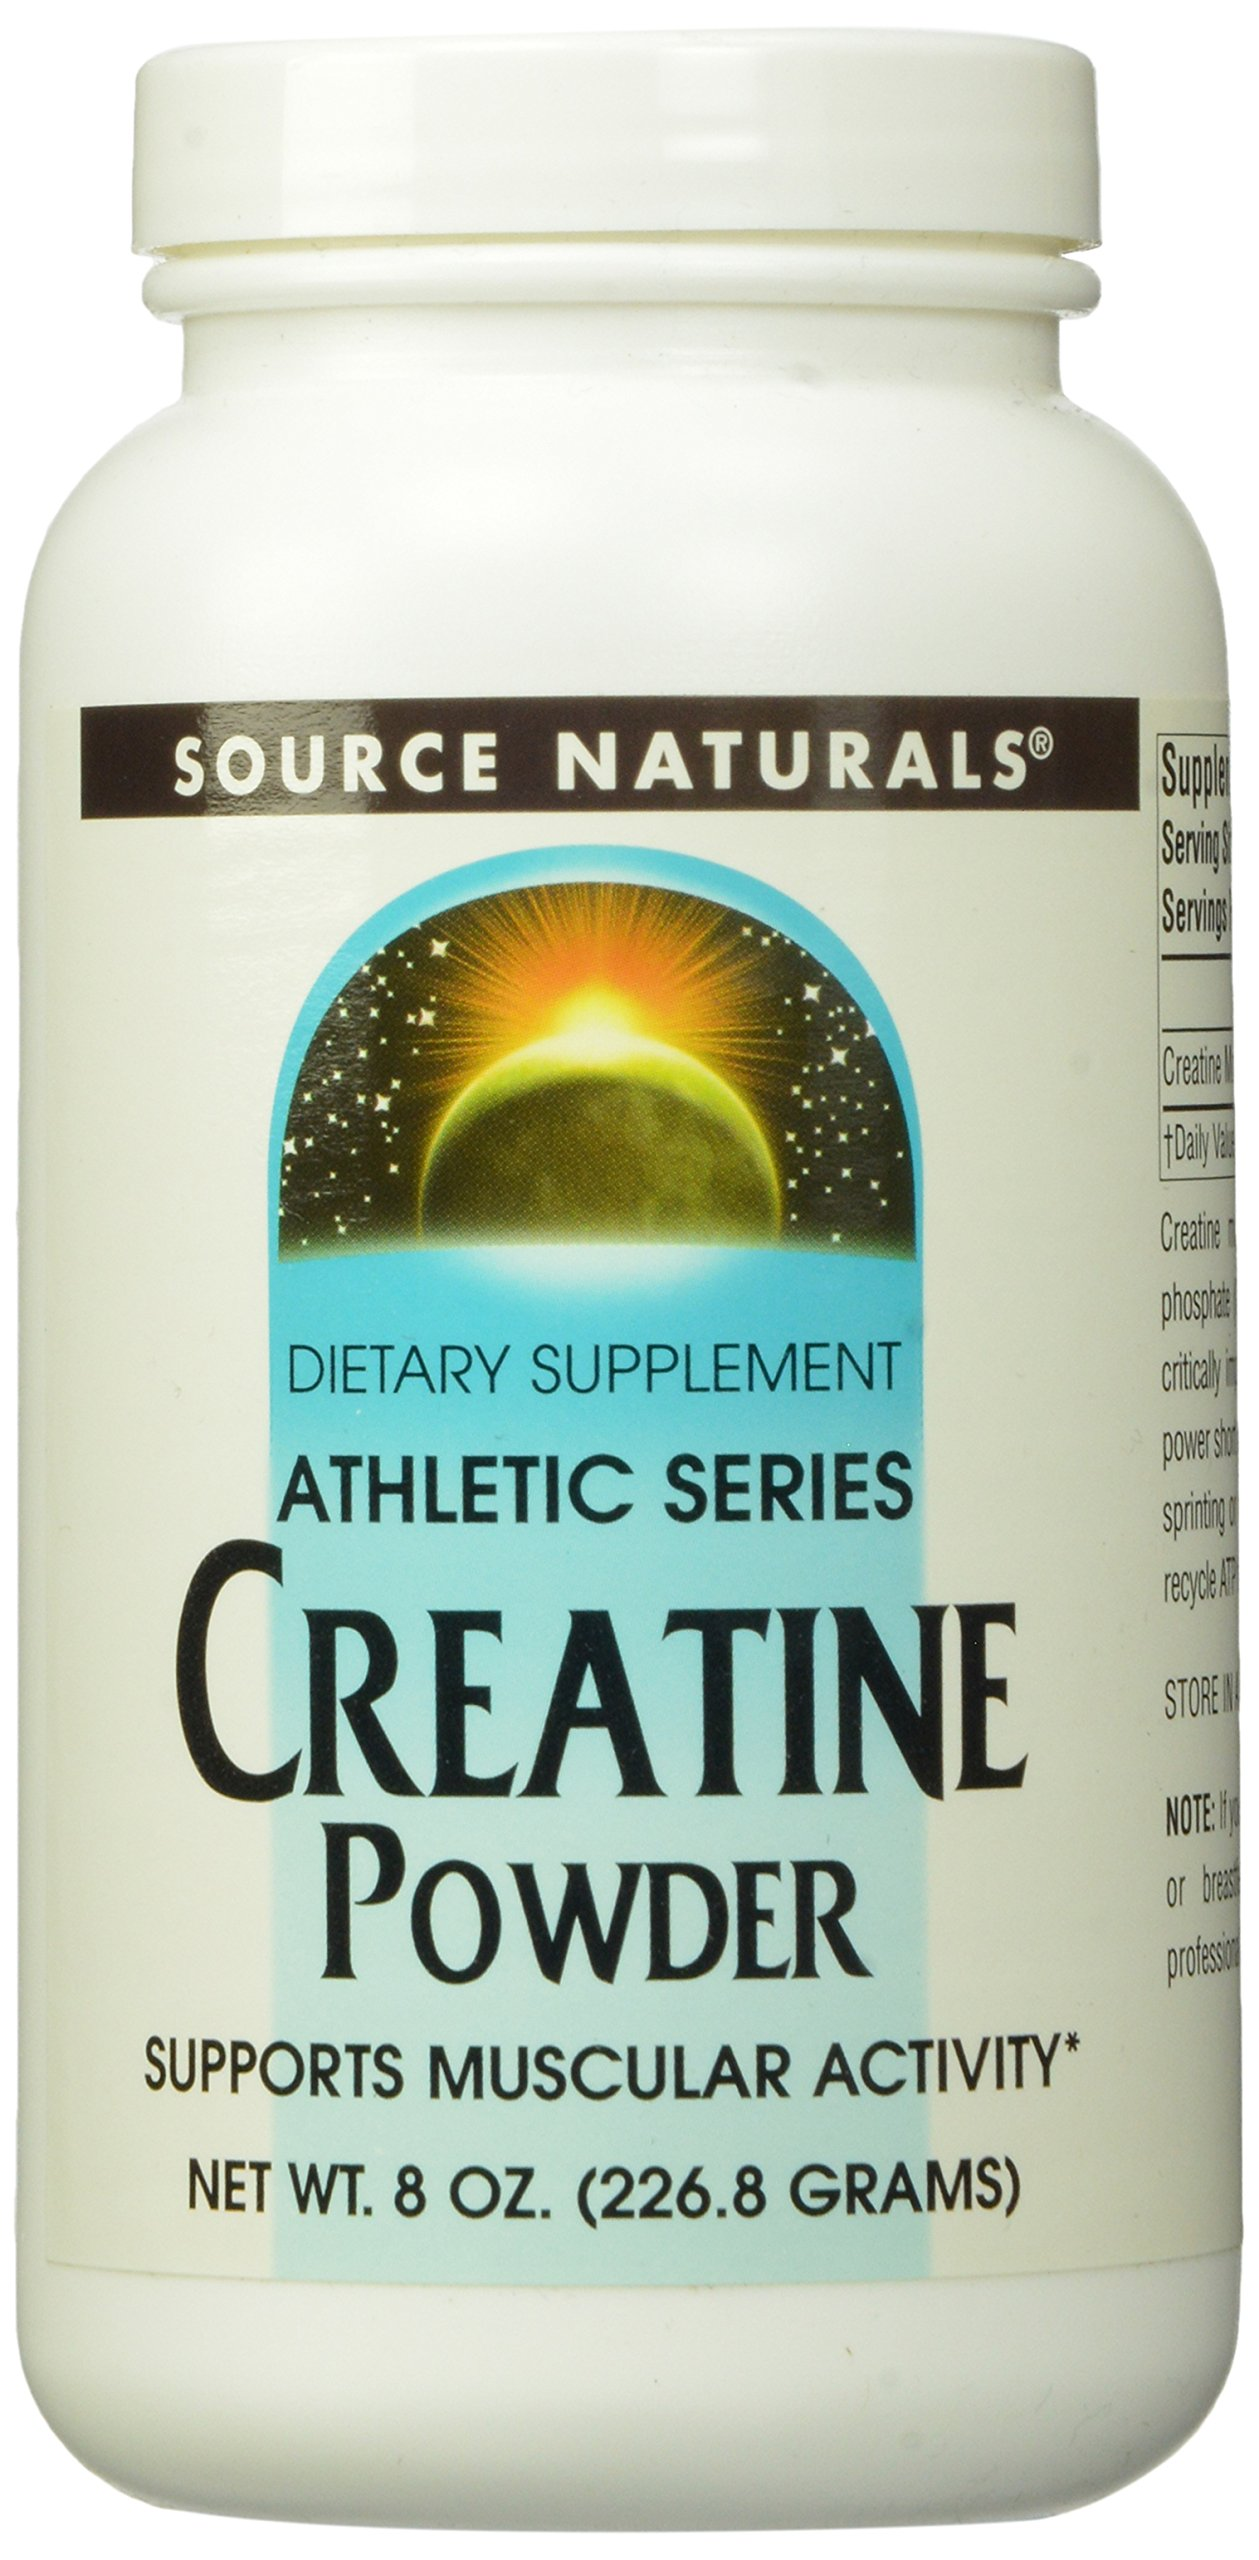 Source Naturals Creatine, Athletic Series Powder, Supports Muscular Activity, 8 Ounces